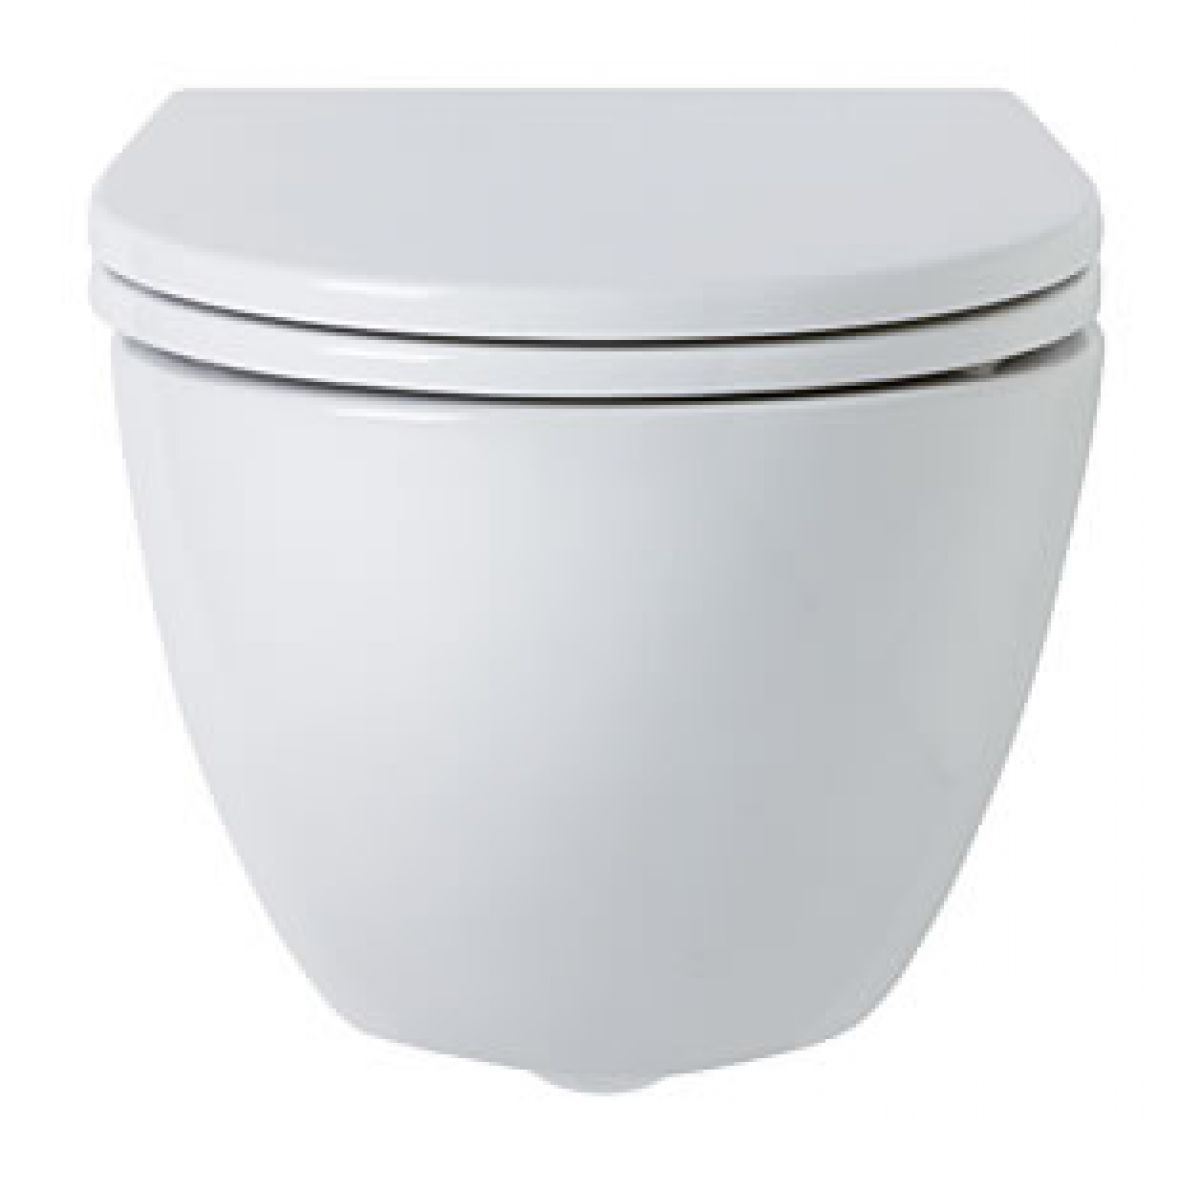 Ideal Standard White Round Wall Hung Toilet : UK Bathrooms